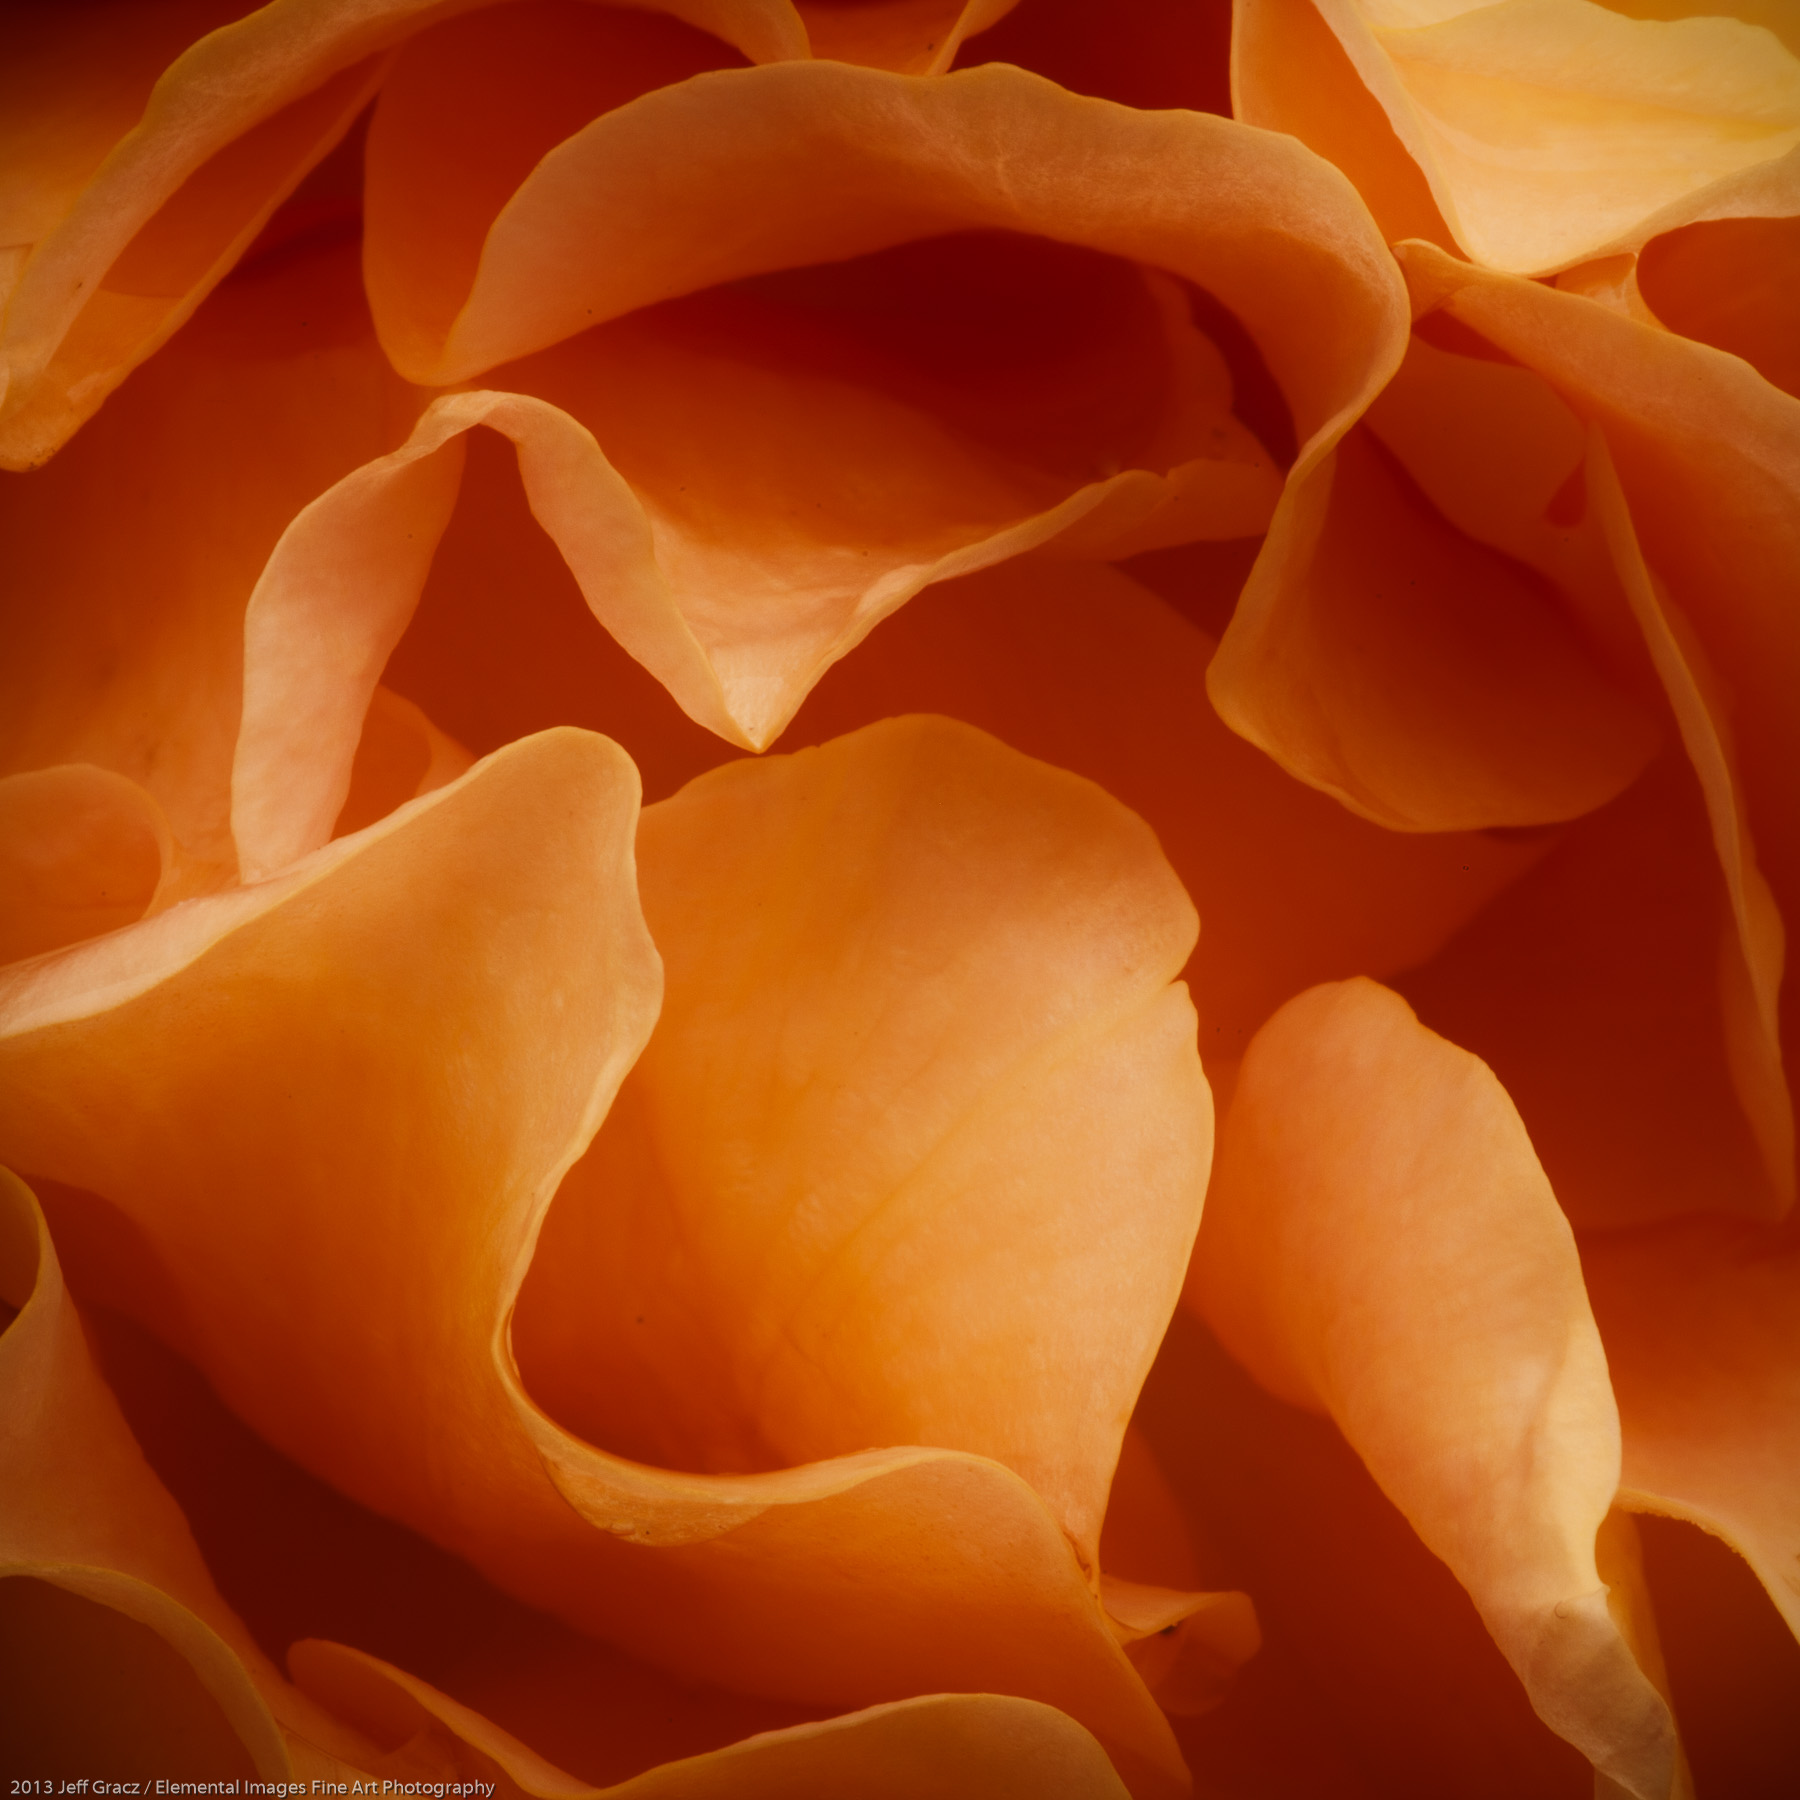 Roses XLiX | Portland | OR | USA - © 2013 Jeff Gracz / Elemental Images Fine Art Photography - All Rights Reserved Worldwide